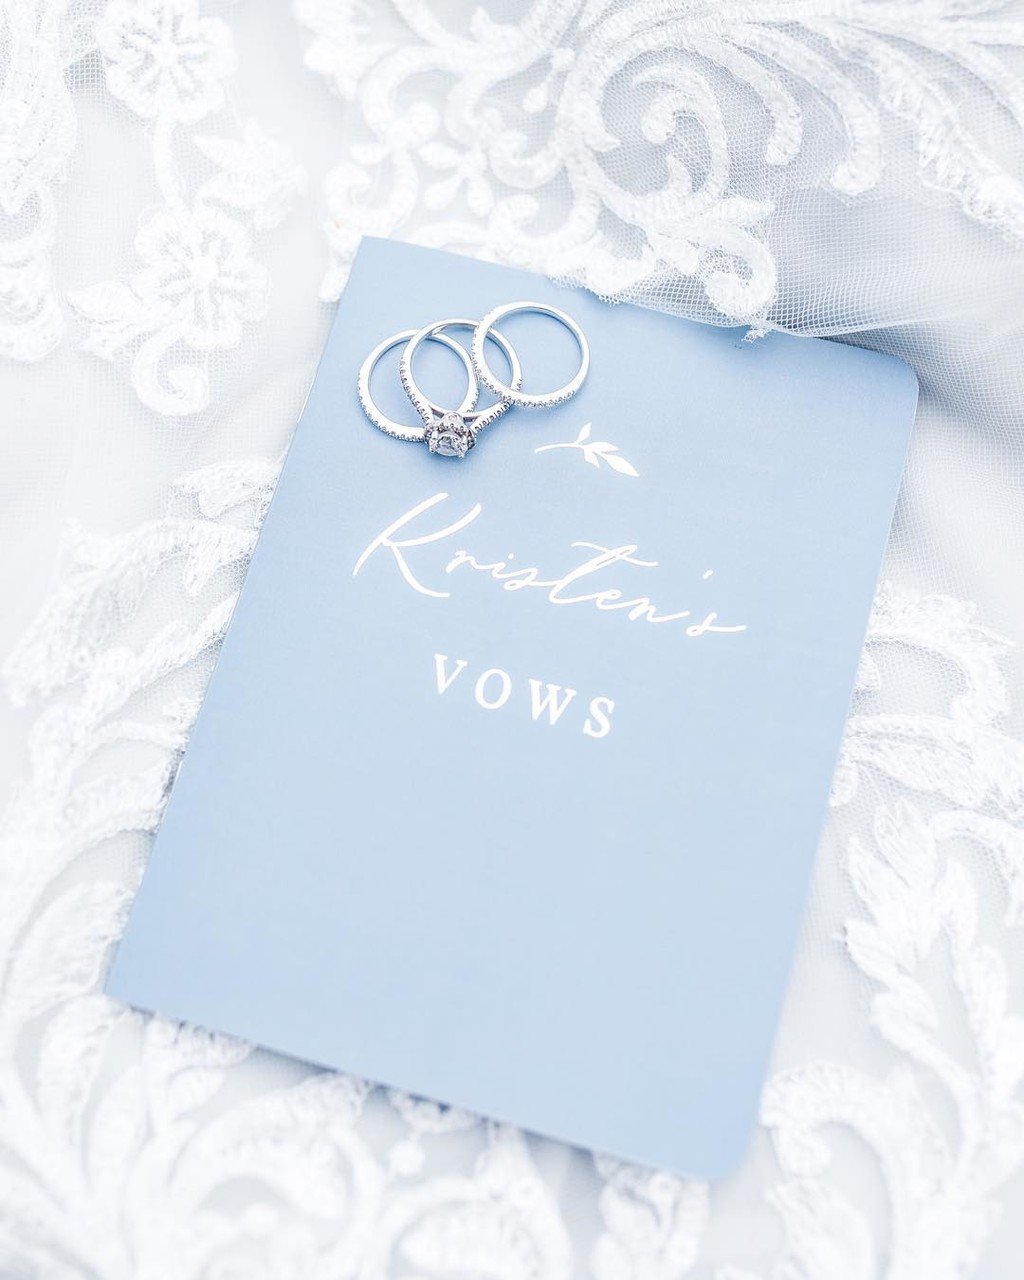 Did you write or are planning to write your own vows for your wedding?